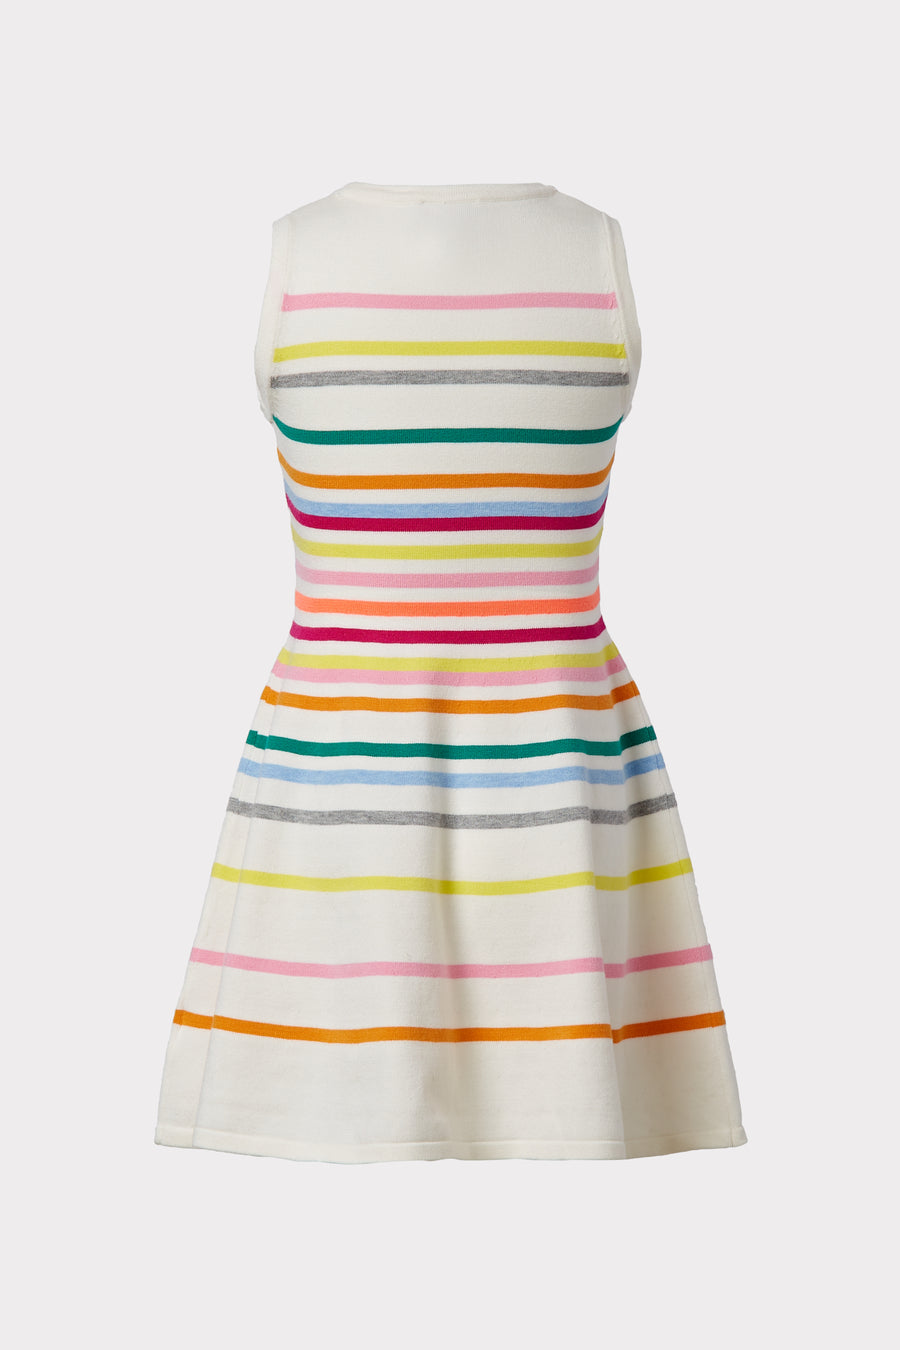 Milly Minis Rainbow Stripe Flare Dress